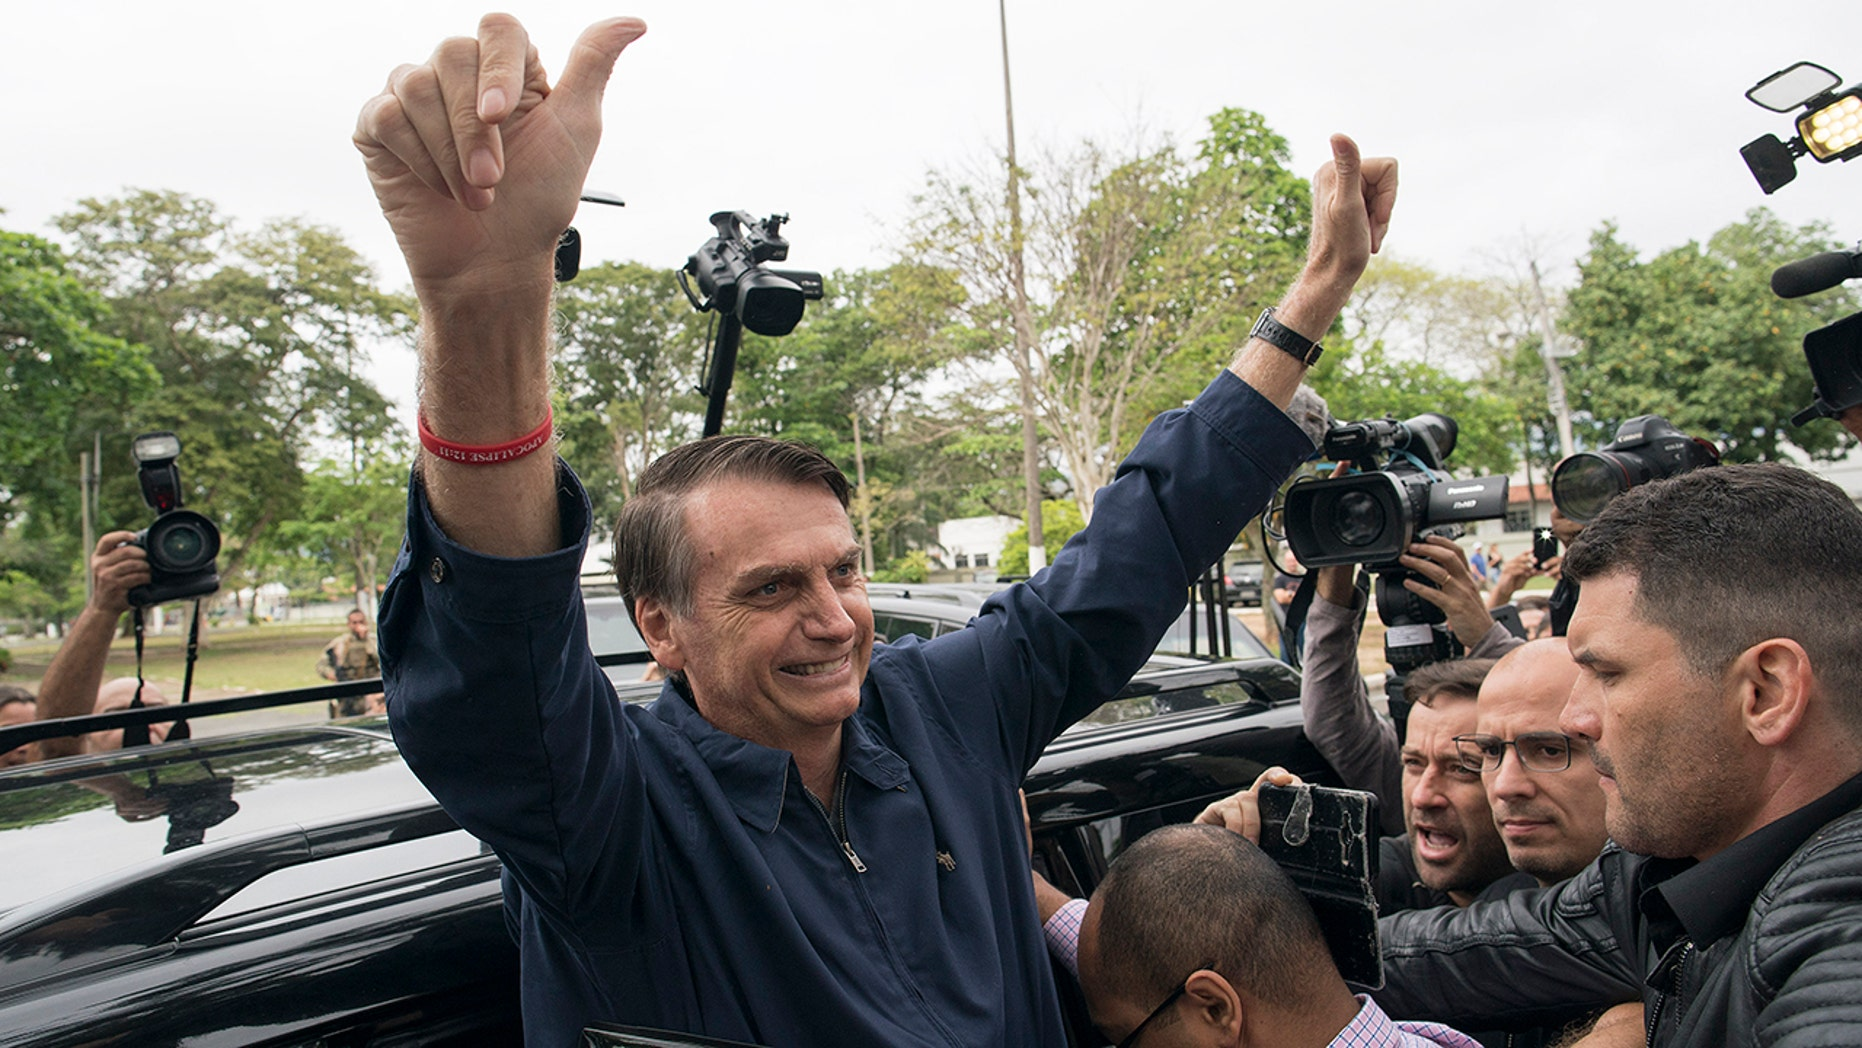 Presidential frontrunner Jair Bolsonaro, of the Social Liberal Party, flashes thumbs up to supporters after voting at a polling station in Rio de Janeiro, Brazil, Sunday, Oct. 7, 2018. (AP Photo/Leo Correa)